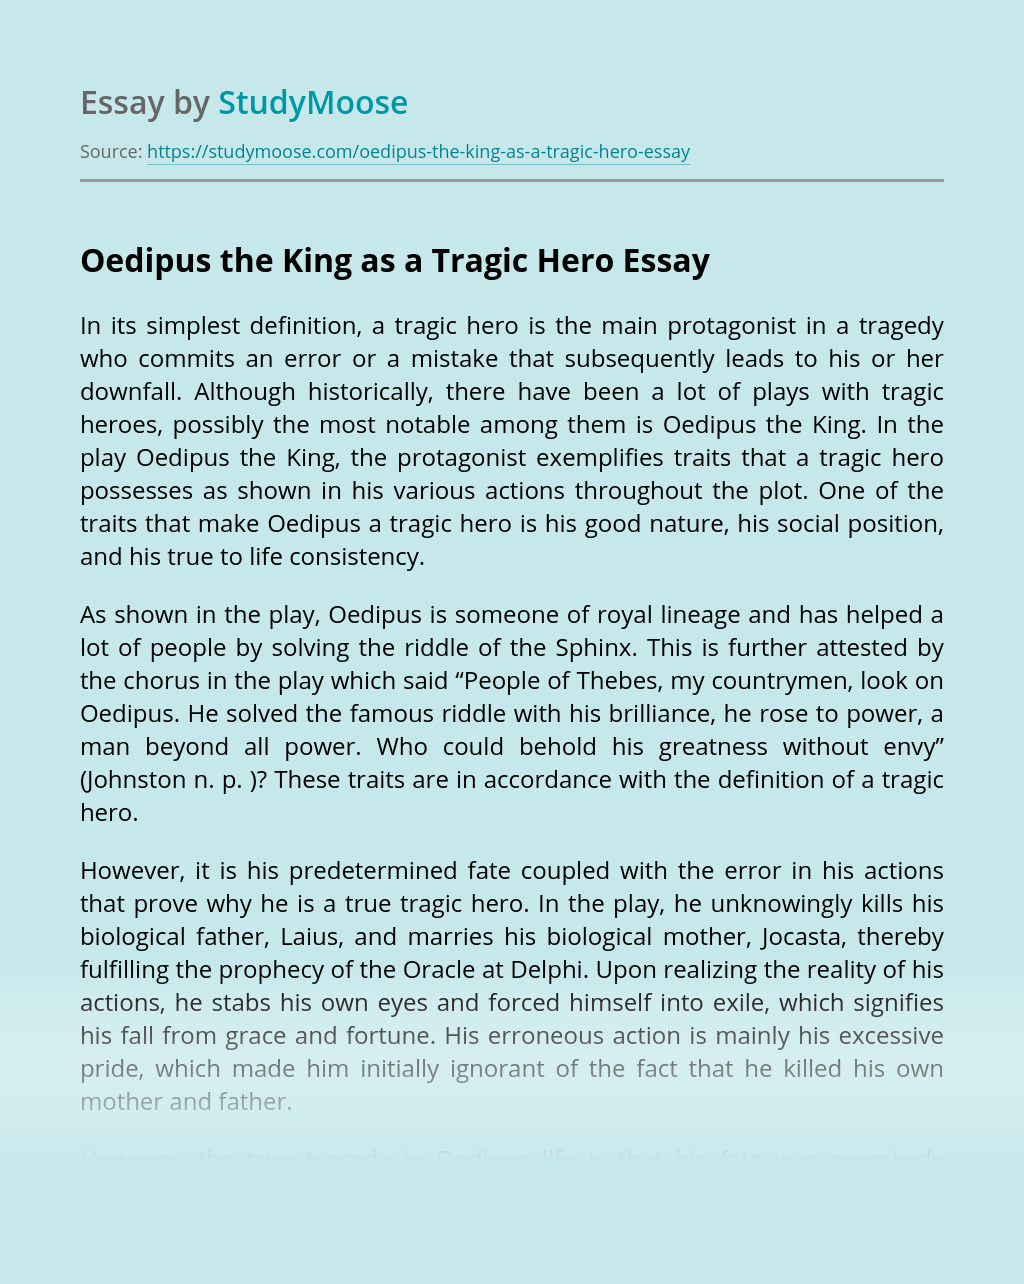 Oedipus the King as a Tragic Hero